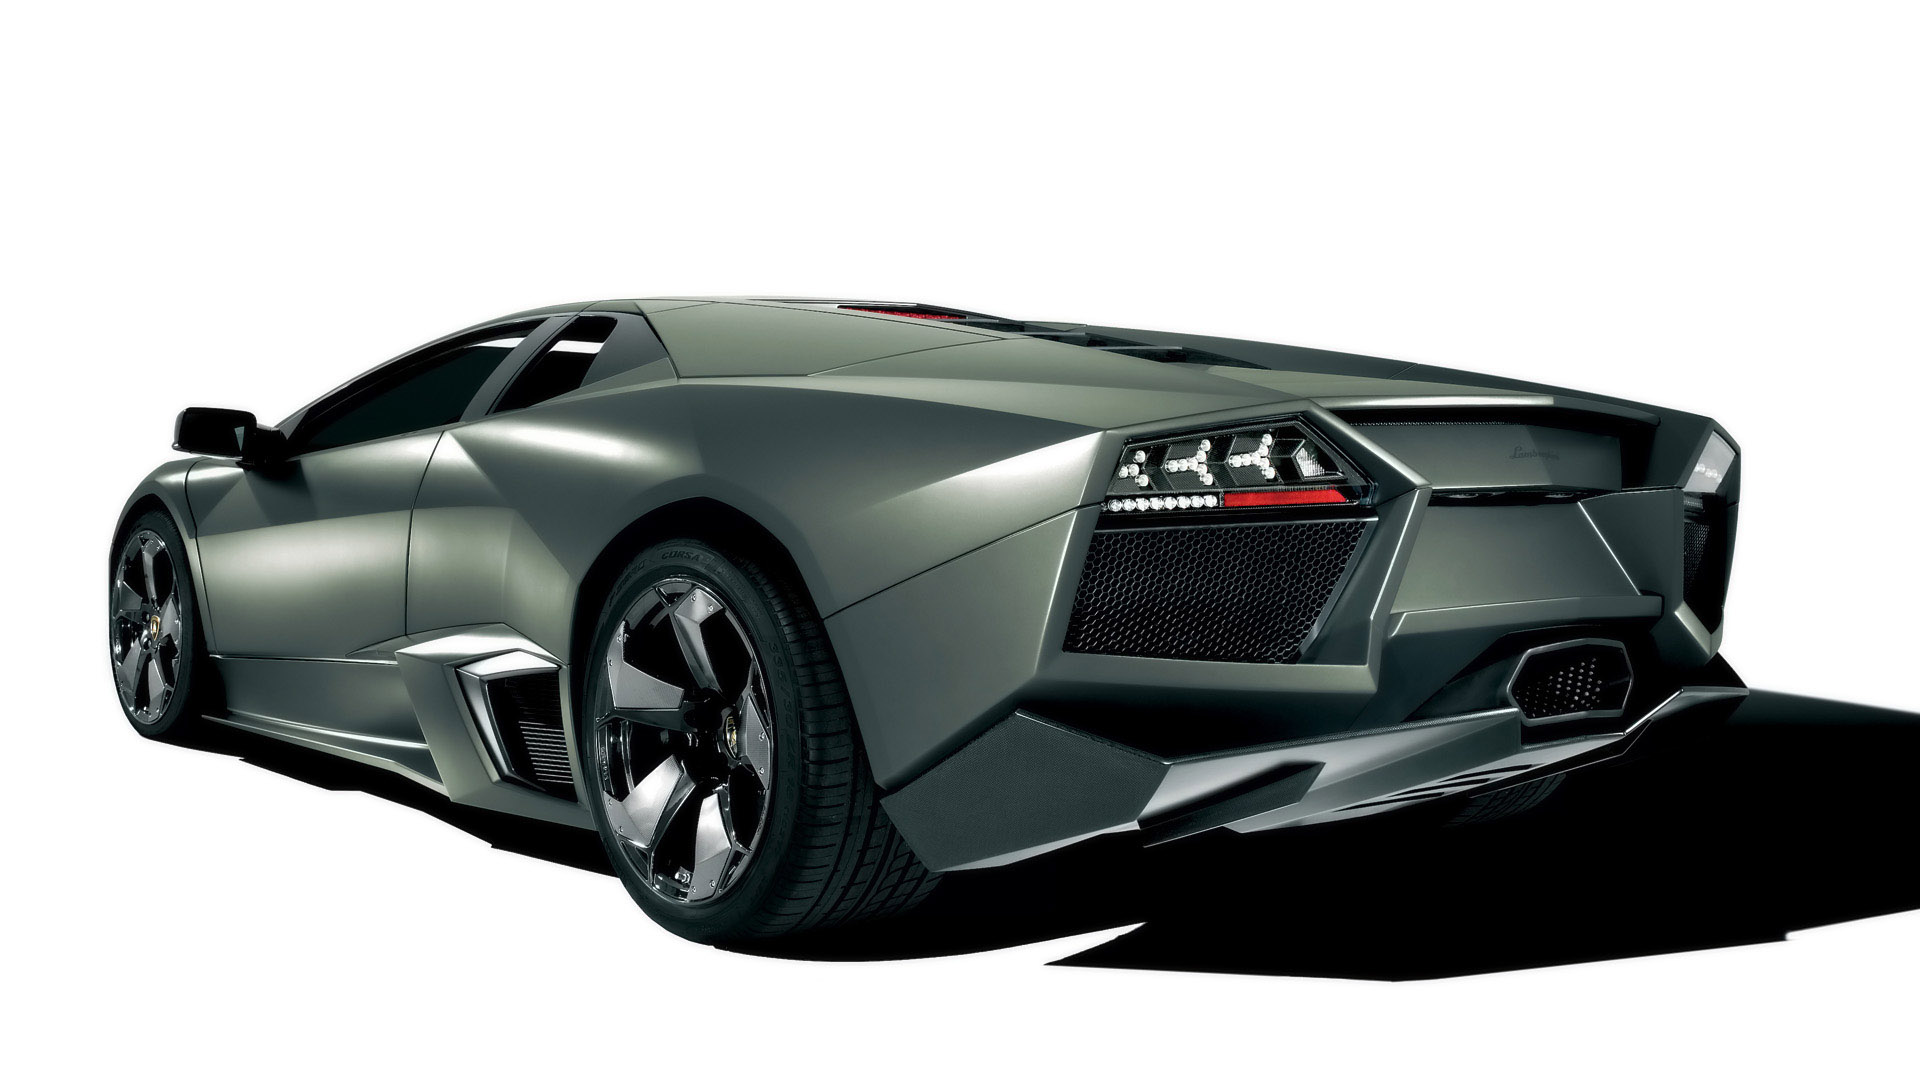 Lamborghini Aventador Wallpaper HD Cars WallPaper HD 1920x1080